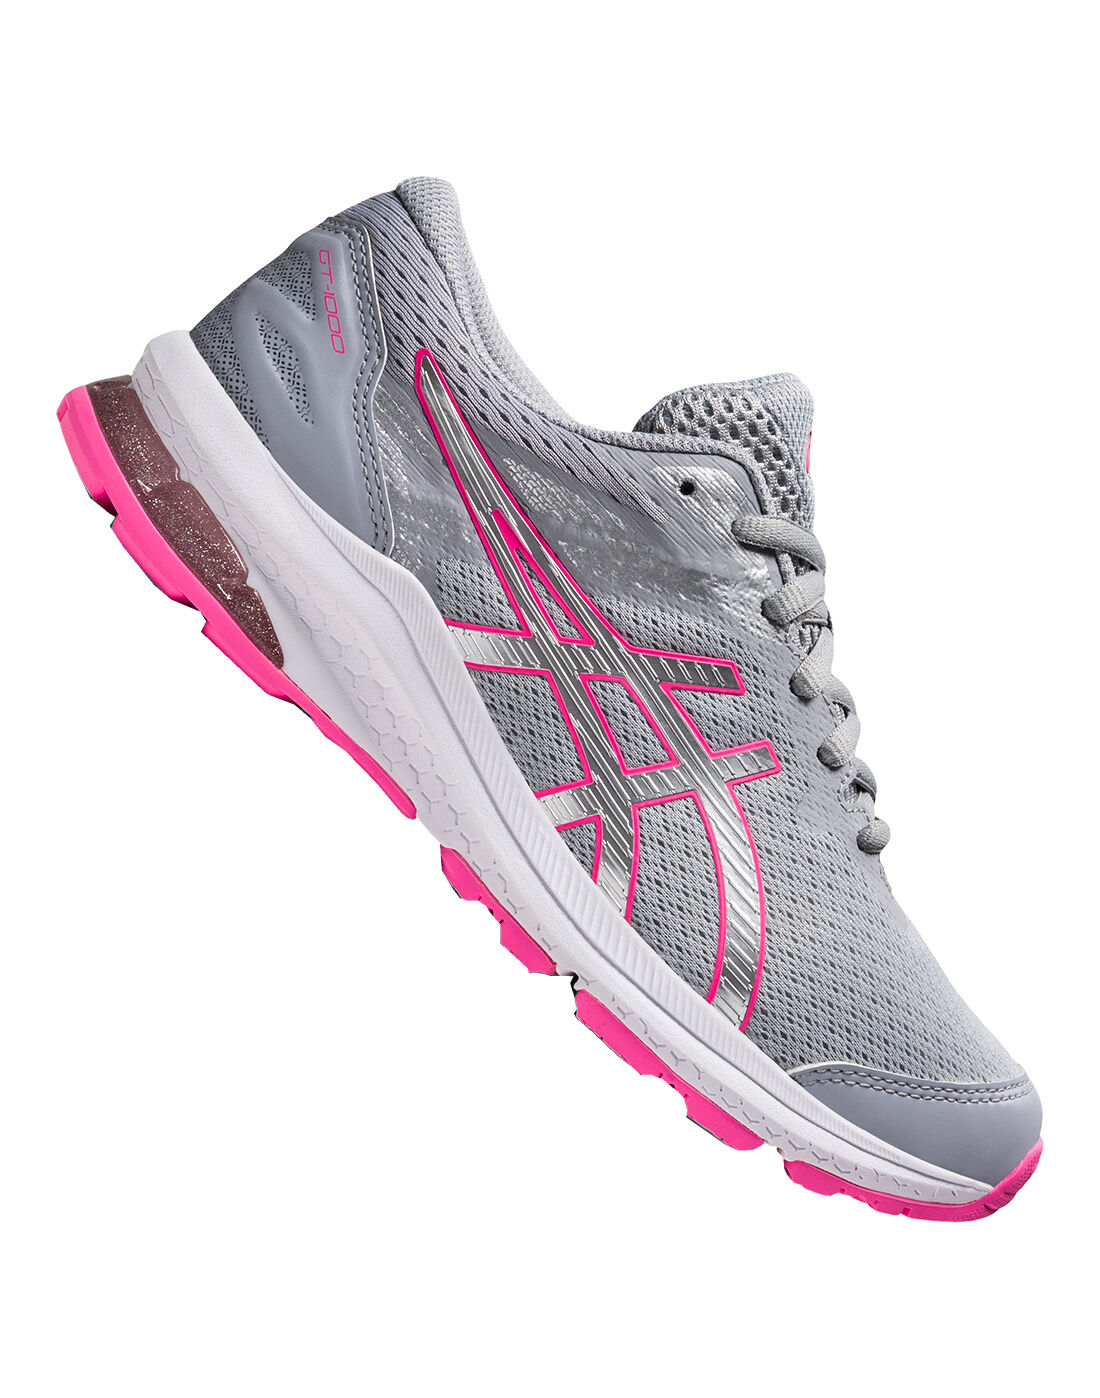 Asics cheap nike air 90 adult size conversion table | Older Girls GT-1000 10